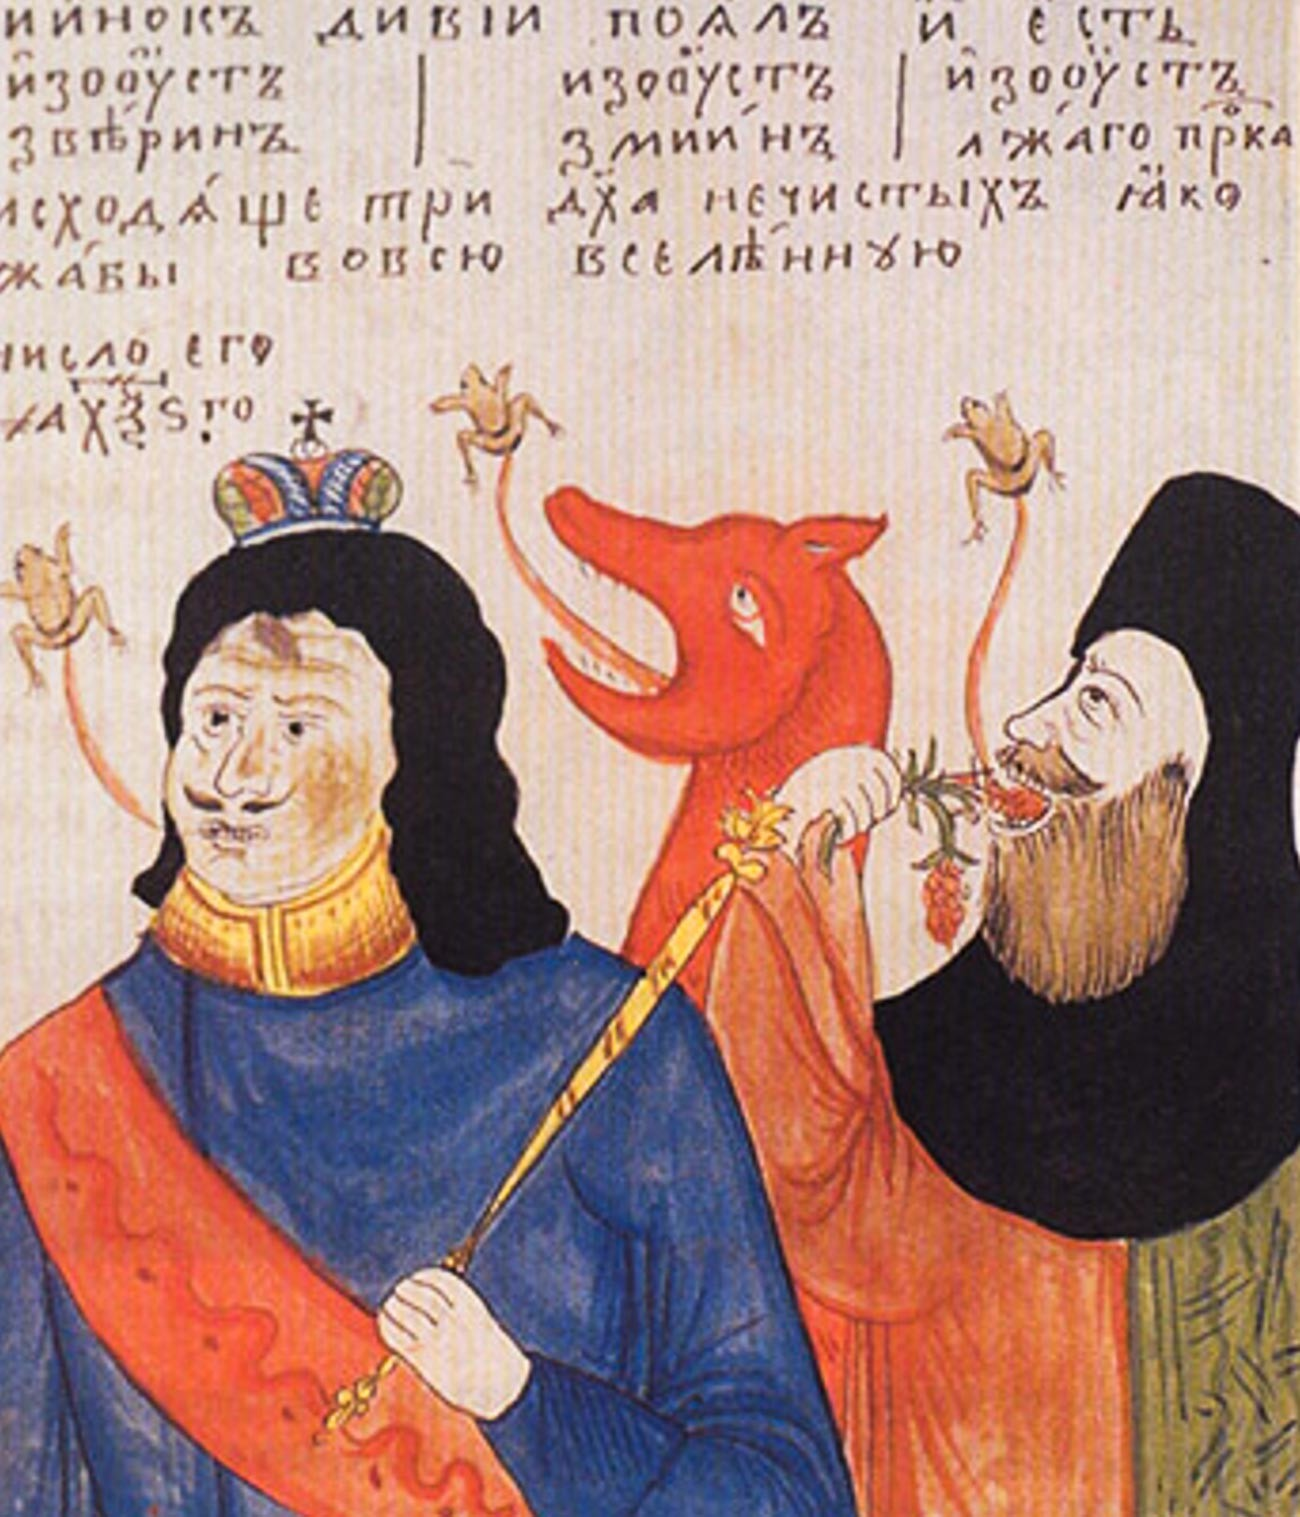 An Old Believers' caricature depicting Tsar Peter as an Antichrist